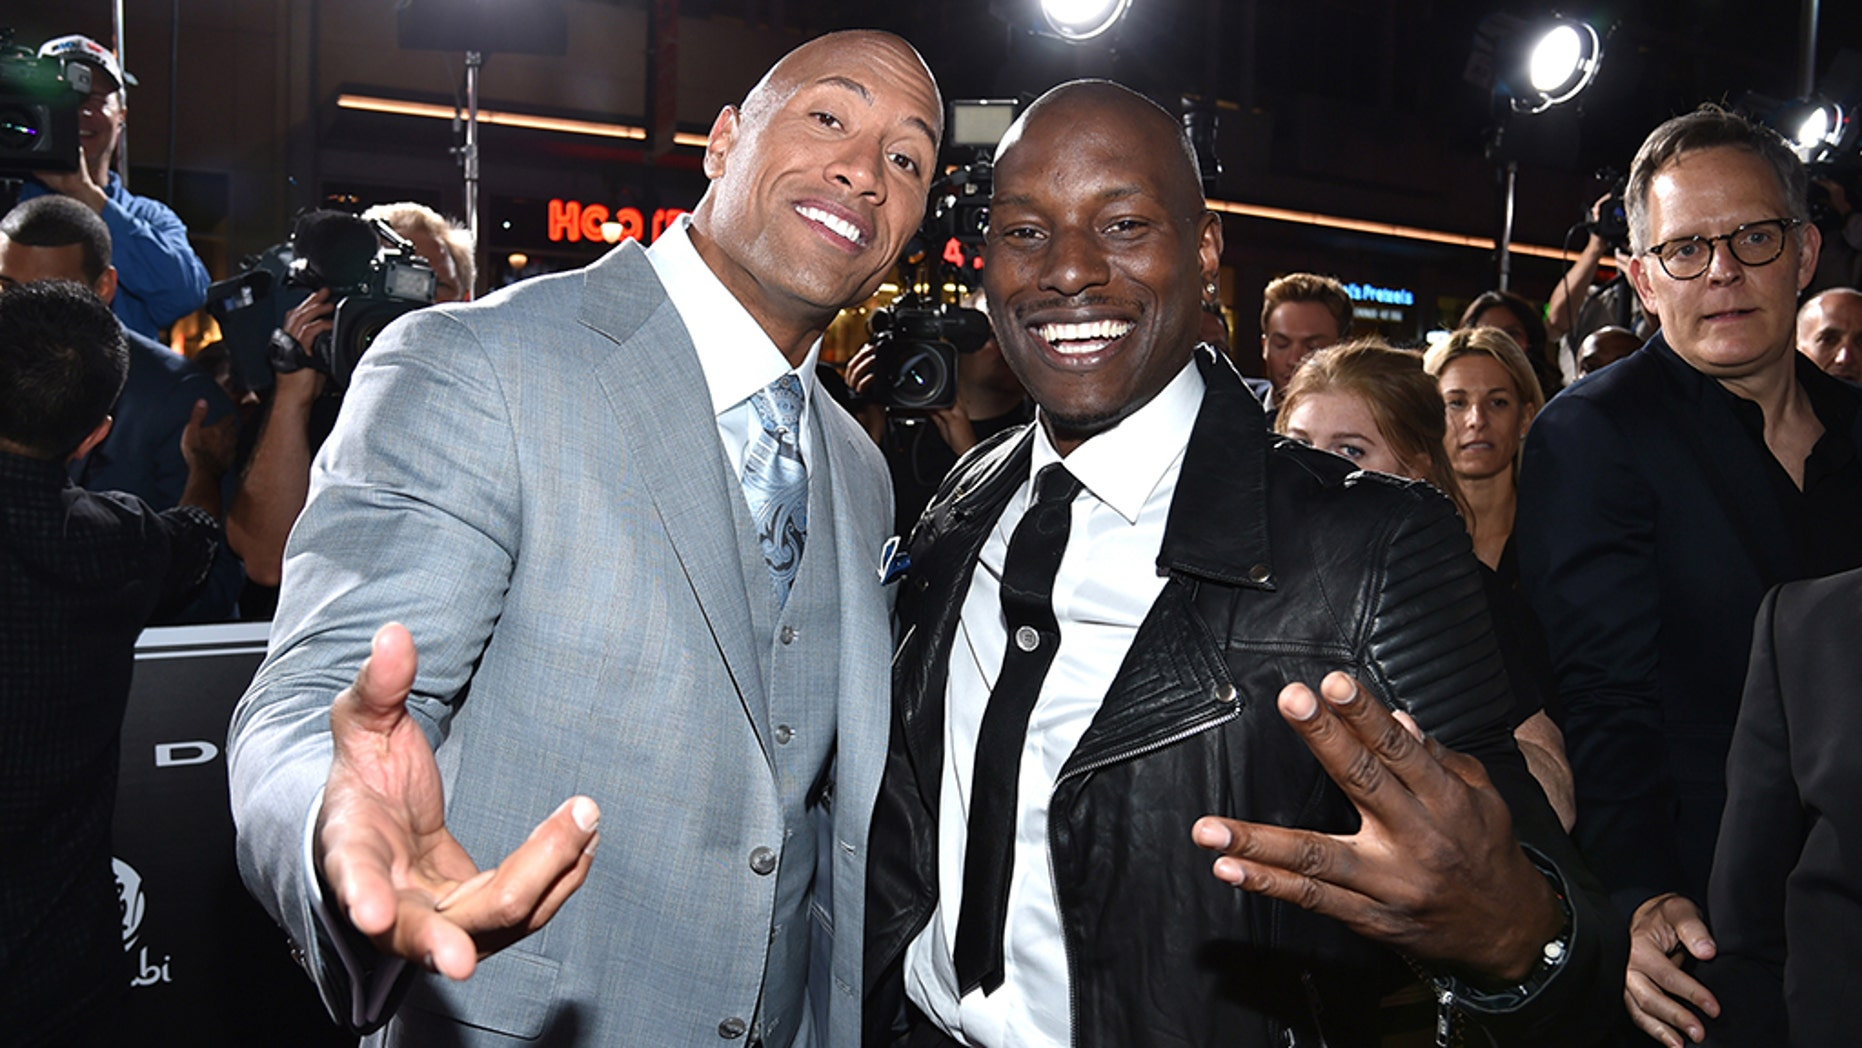 Dwayne Johnson said he sees no reason to talk to Tyrese Gibson following their feud.